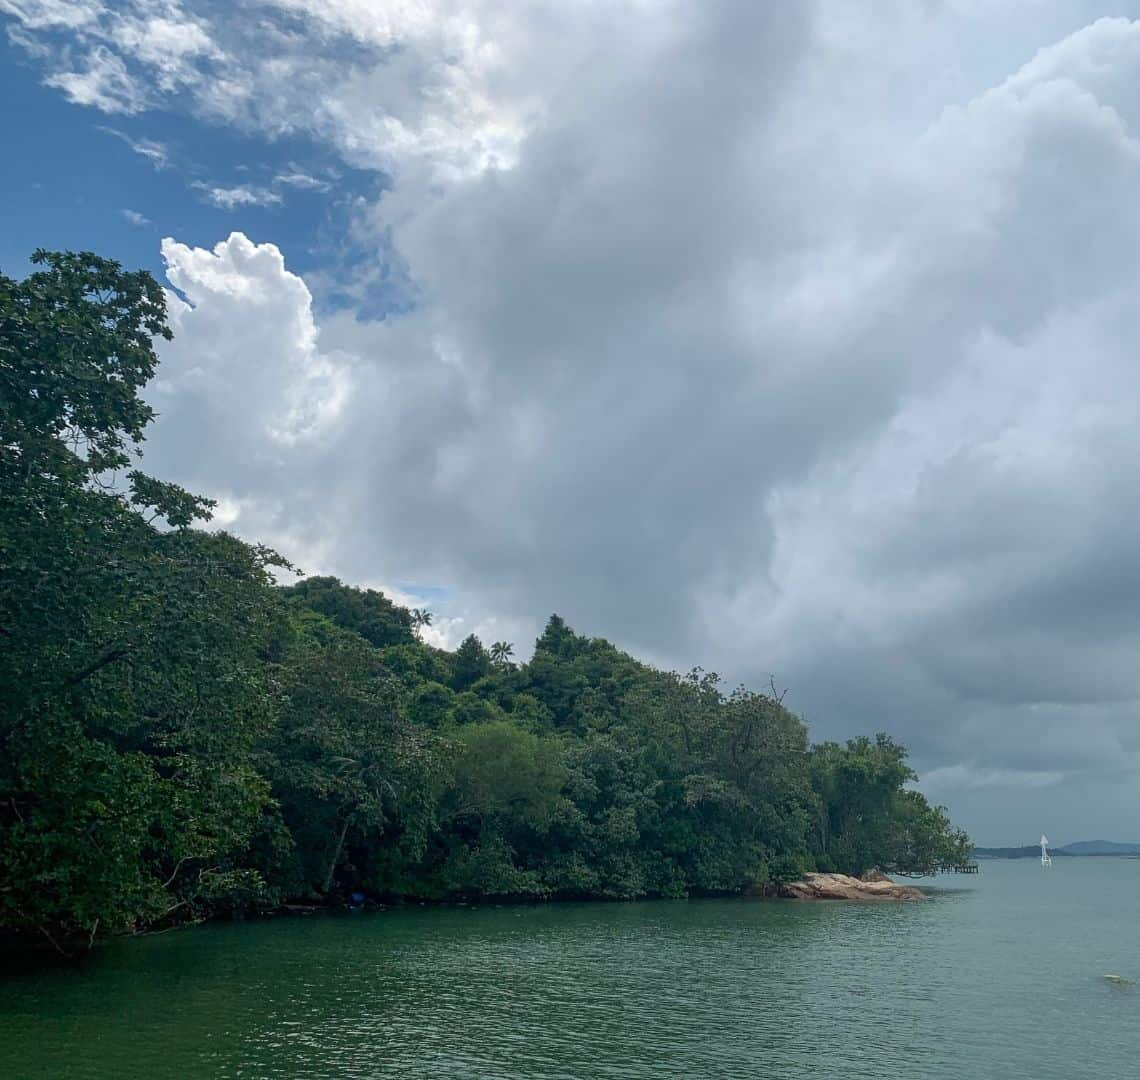 The sea is a dark green-ish turquoise. There are many trees sloping down to the water from the left and a small beach or outcrop of beige rocks at the end. The sky is very grey and cloudy except for some blue sky on the left.